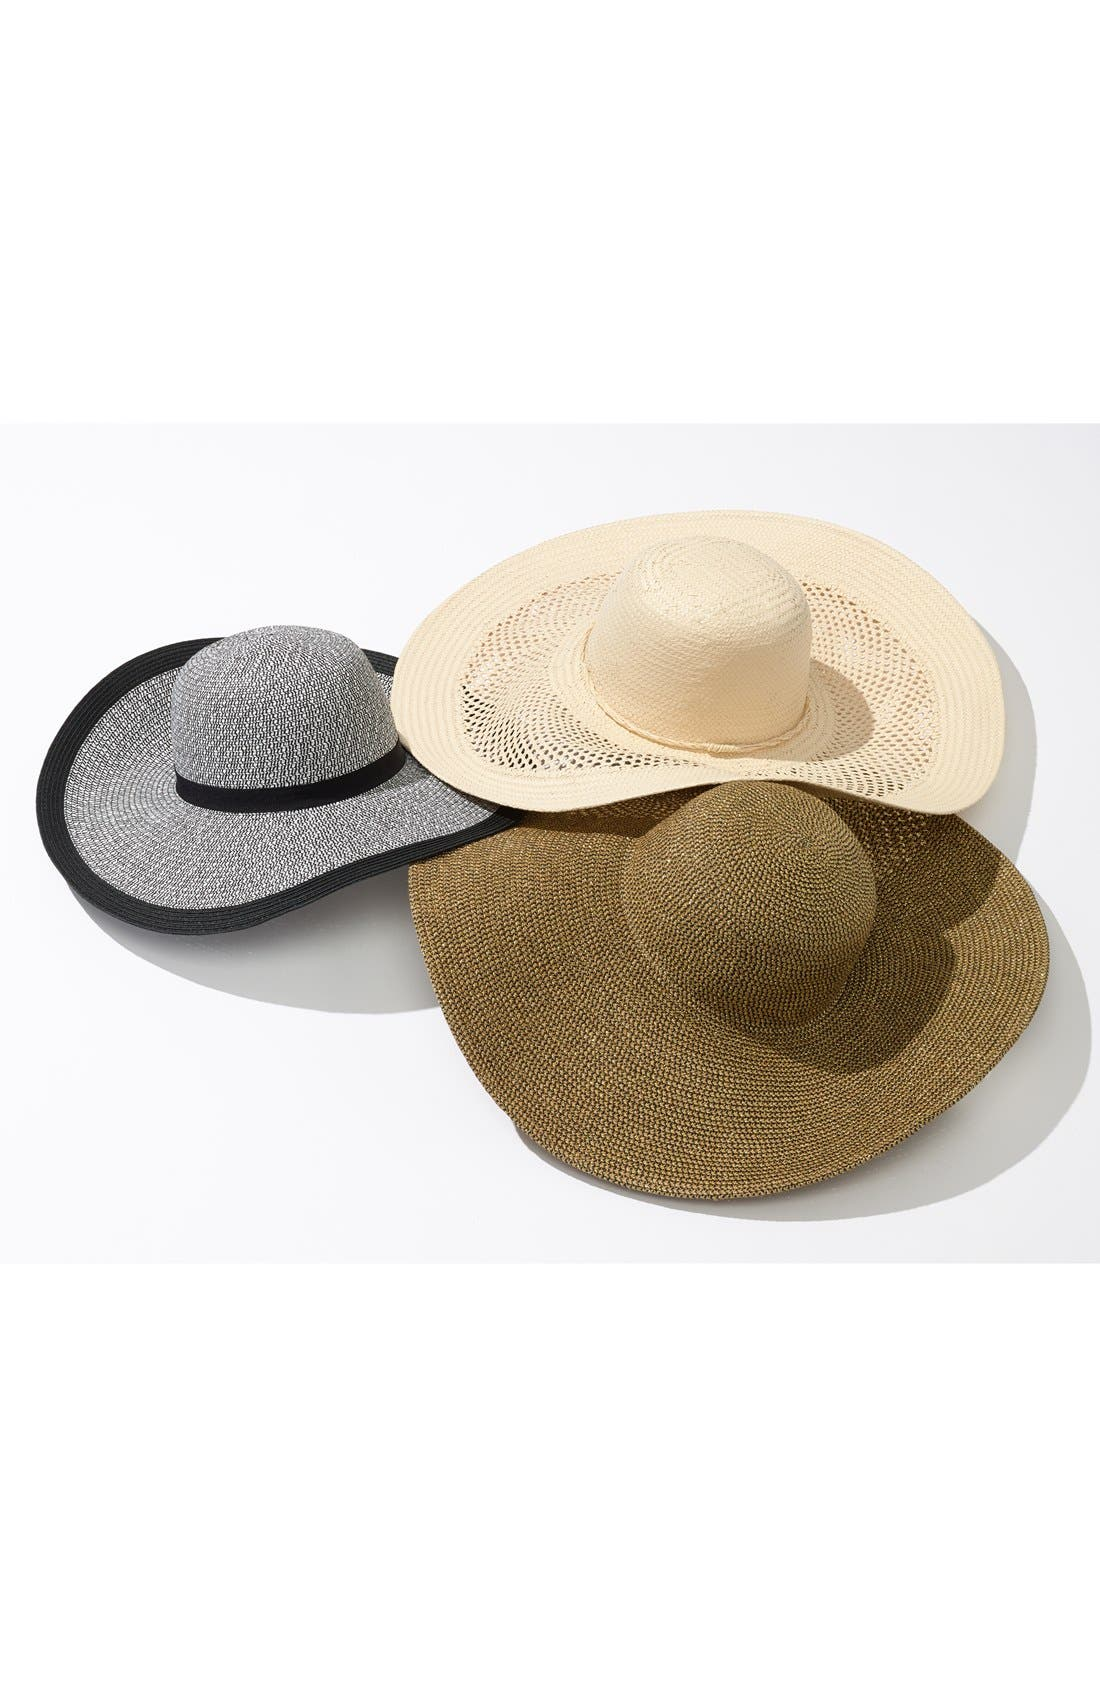 Alternate Image 2  - Phase 3 Floppy Straw Hat